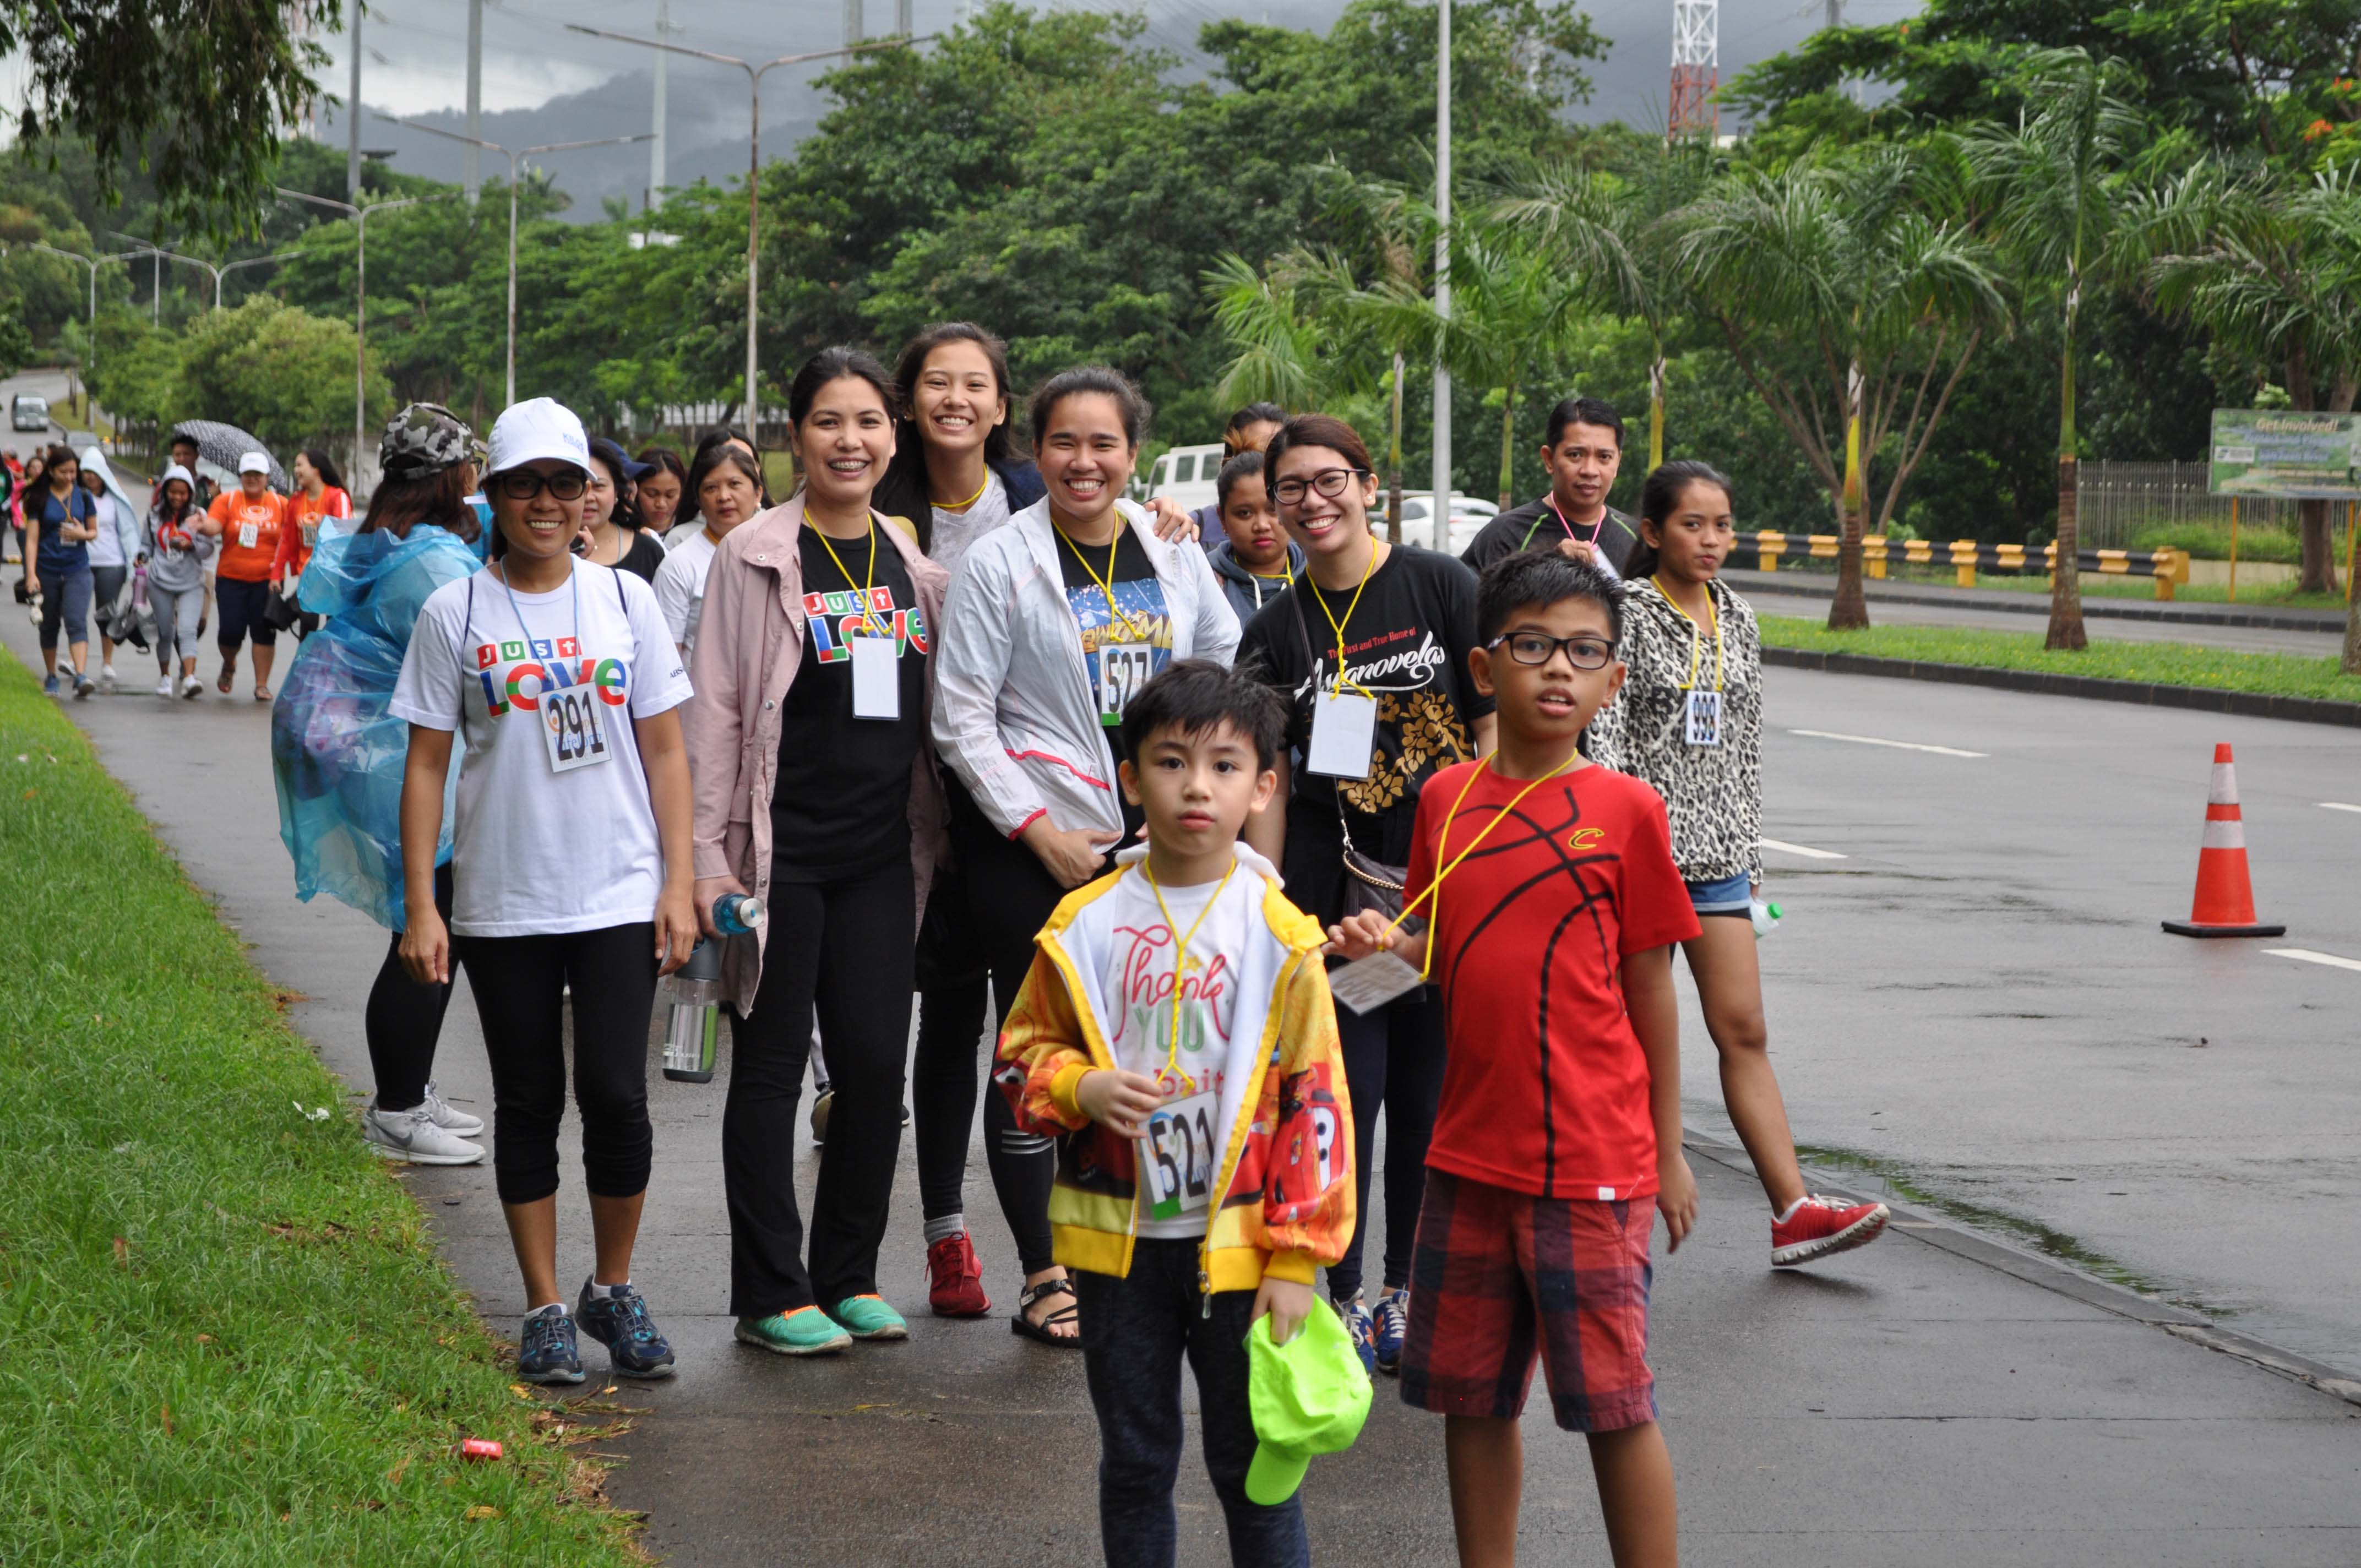 Young walkers take the lead